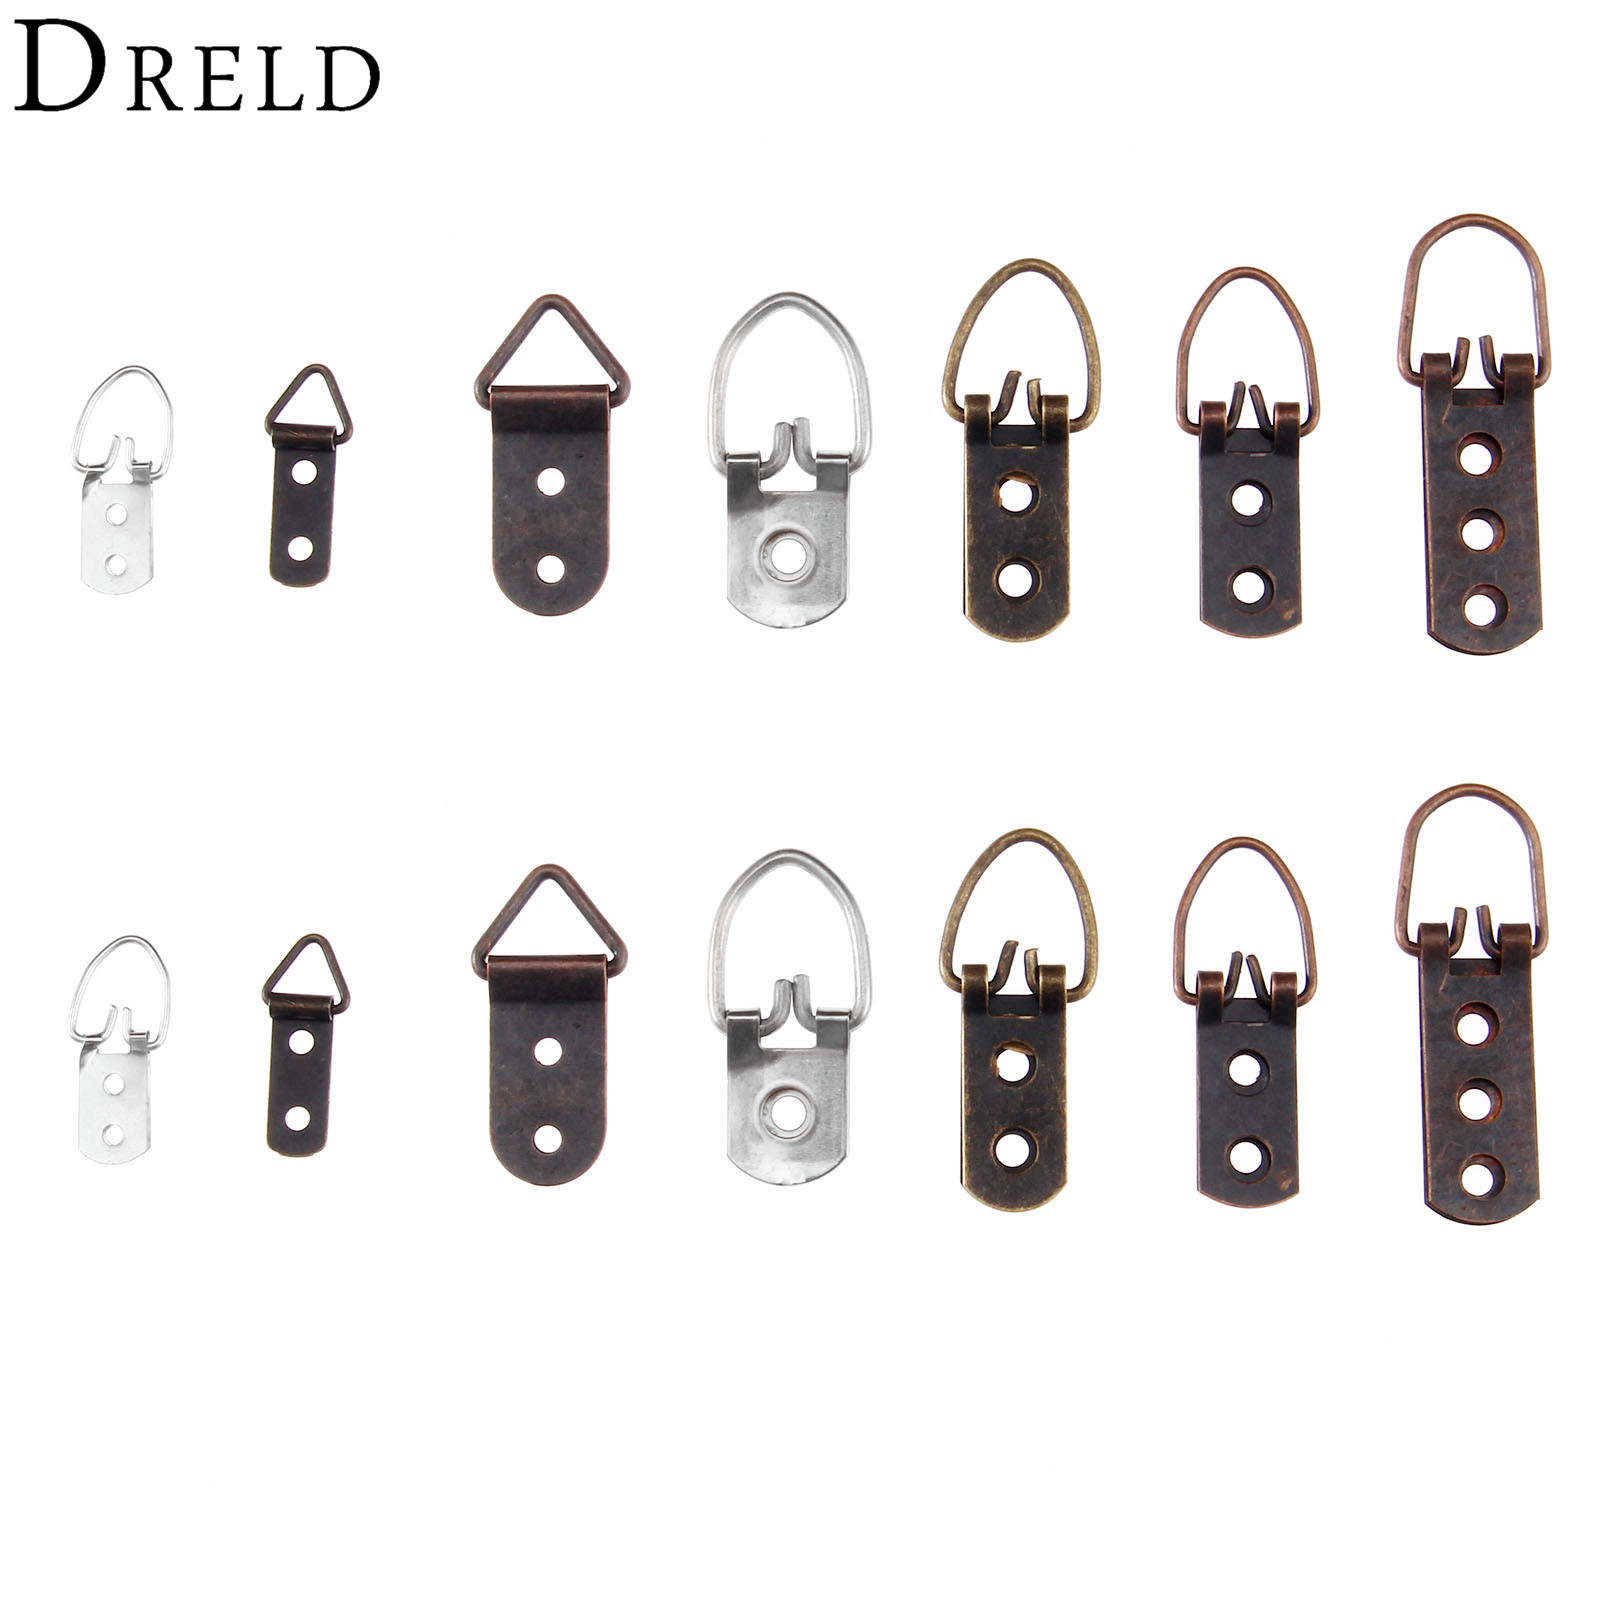 DRELD 5/20Pcs Zinc Alloy D-Ring Hanging Picture Photo Oil Painting Mirror Frame Hooks Hanger with Screws Bronze/Silver Tone